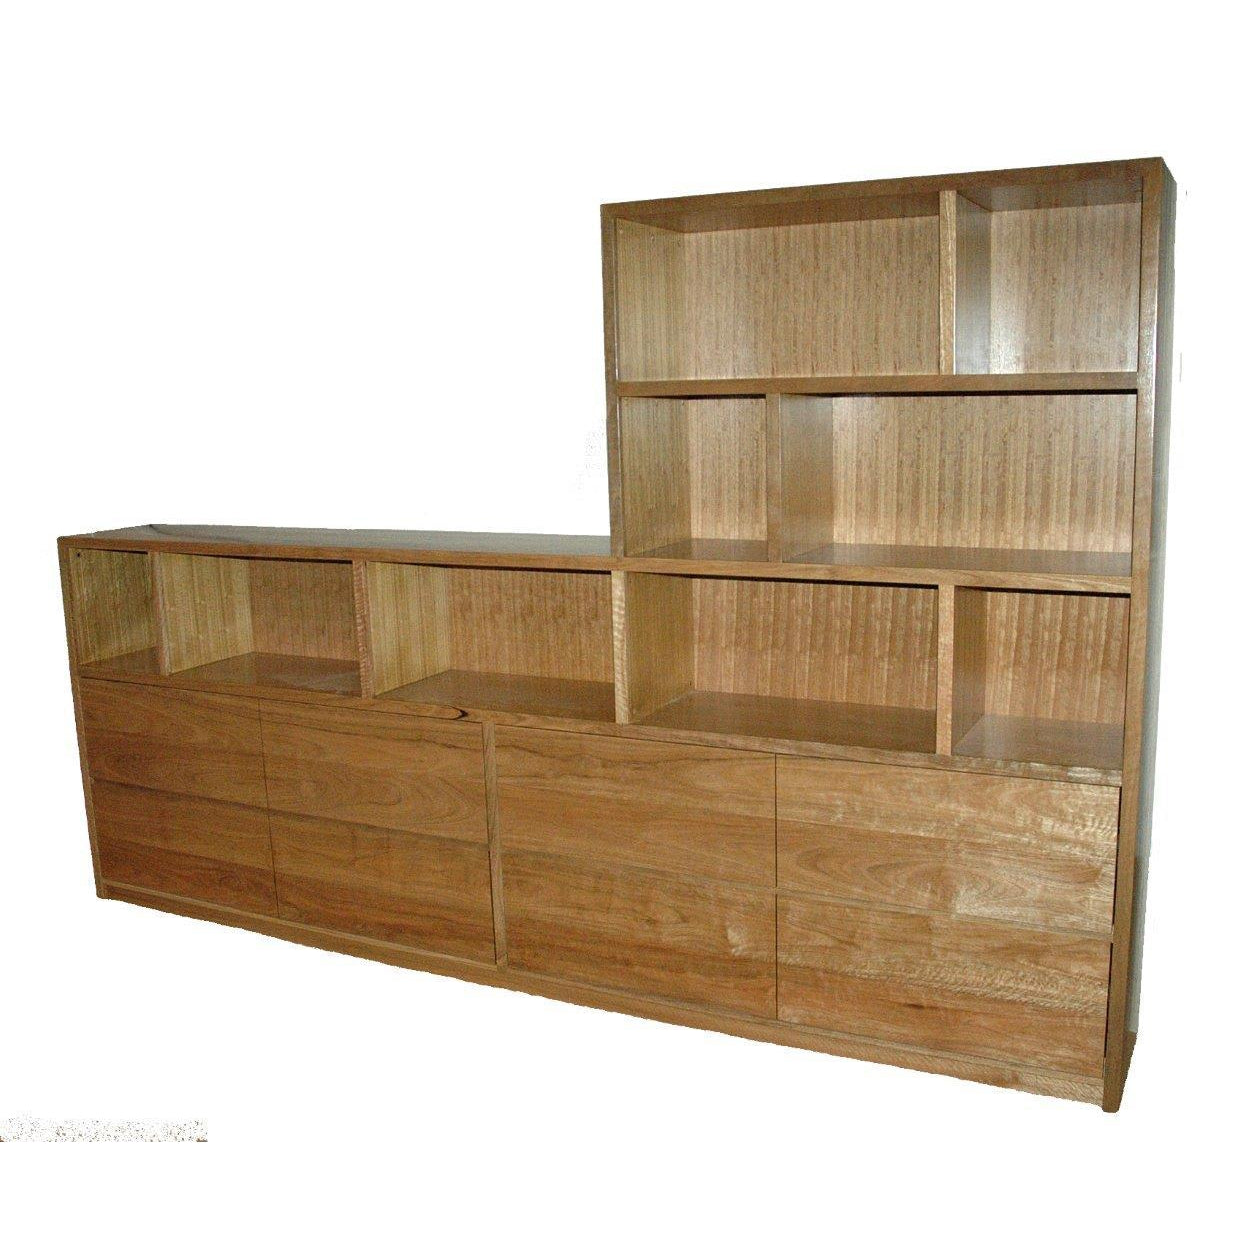 Custom design spotted gum bookcase-bookcase-Wildwood Designs Furniture